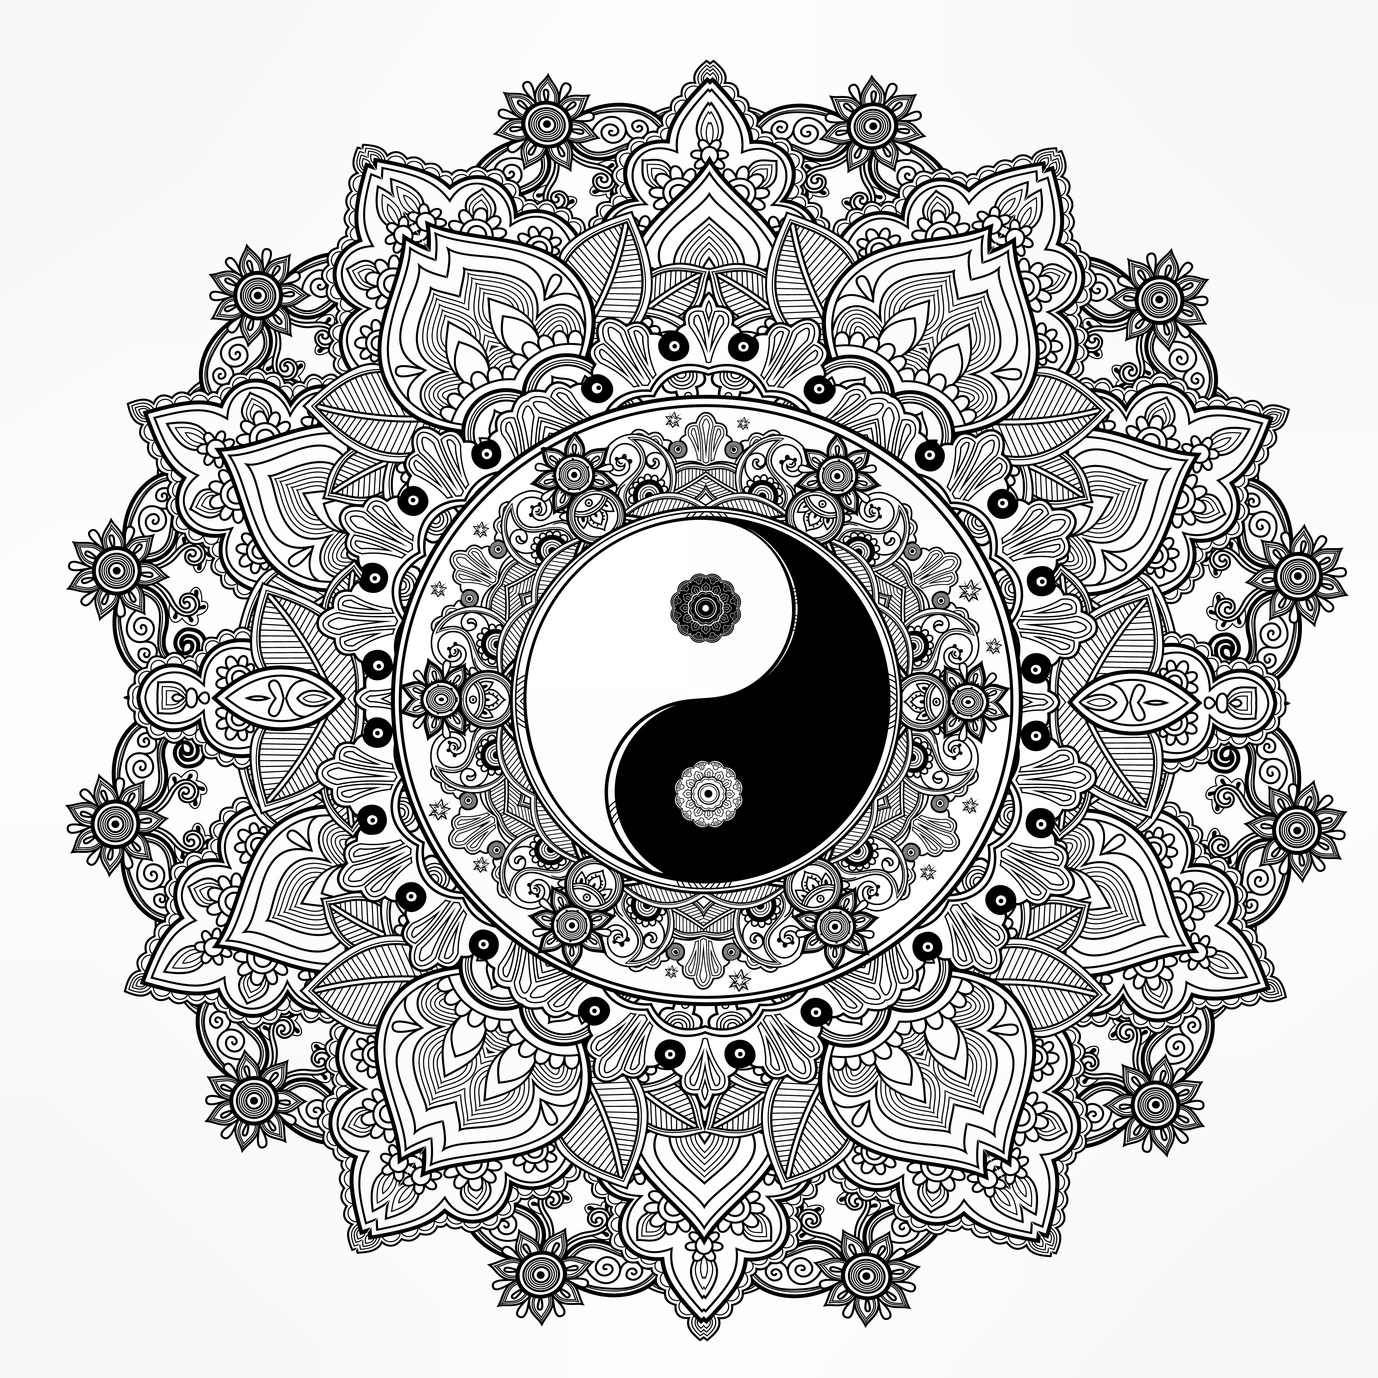 Yin Yang Mandala Coloring Pages At Getdrawings Com Free